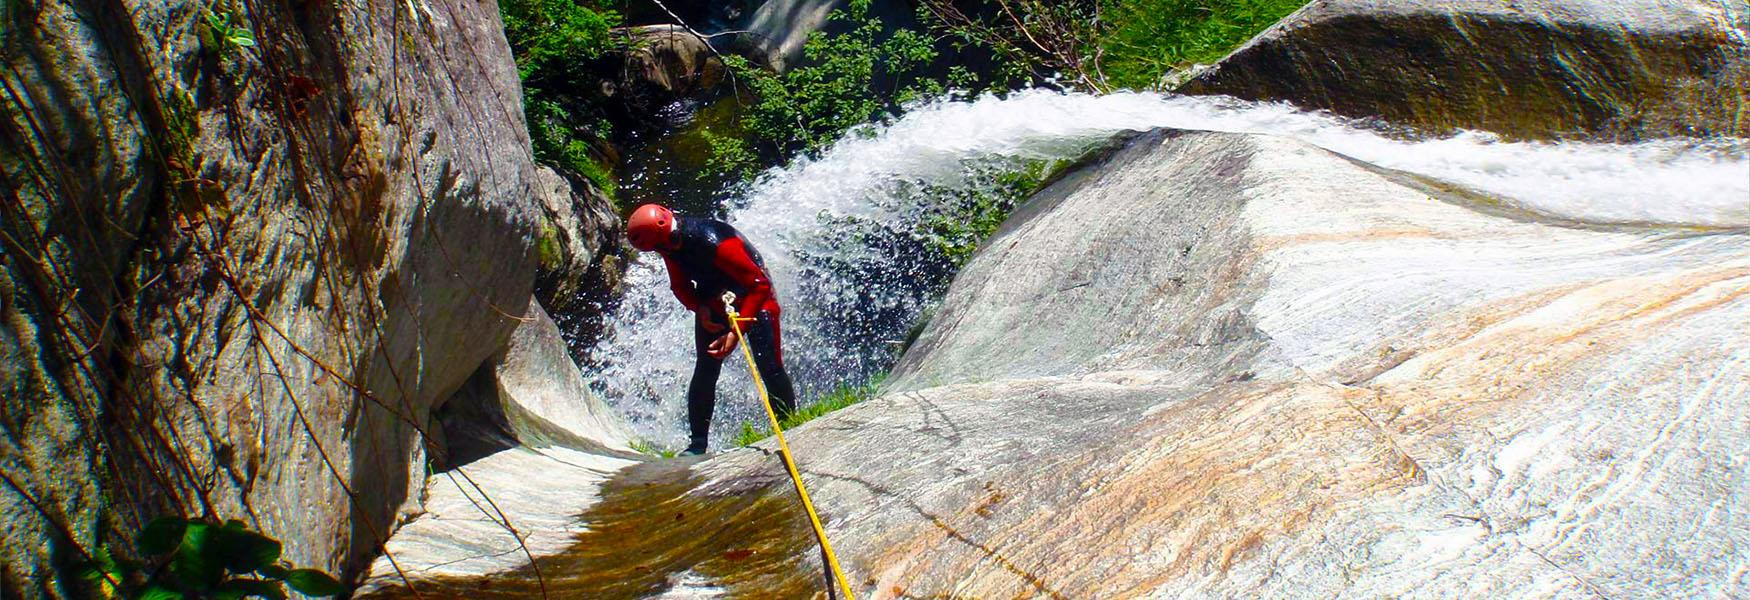 Canyoning in Valsesia